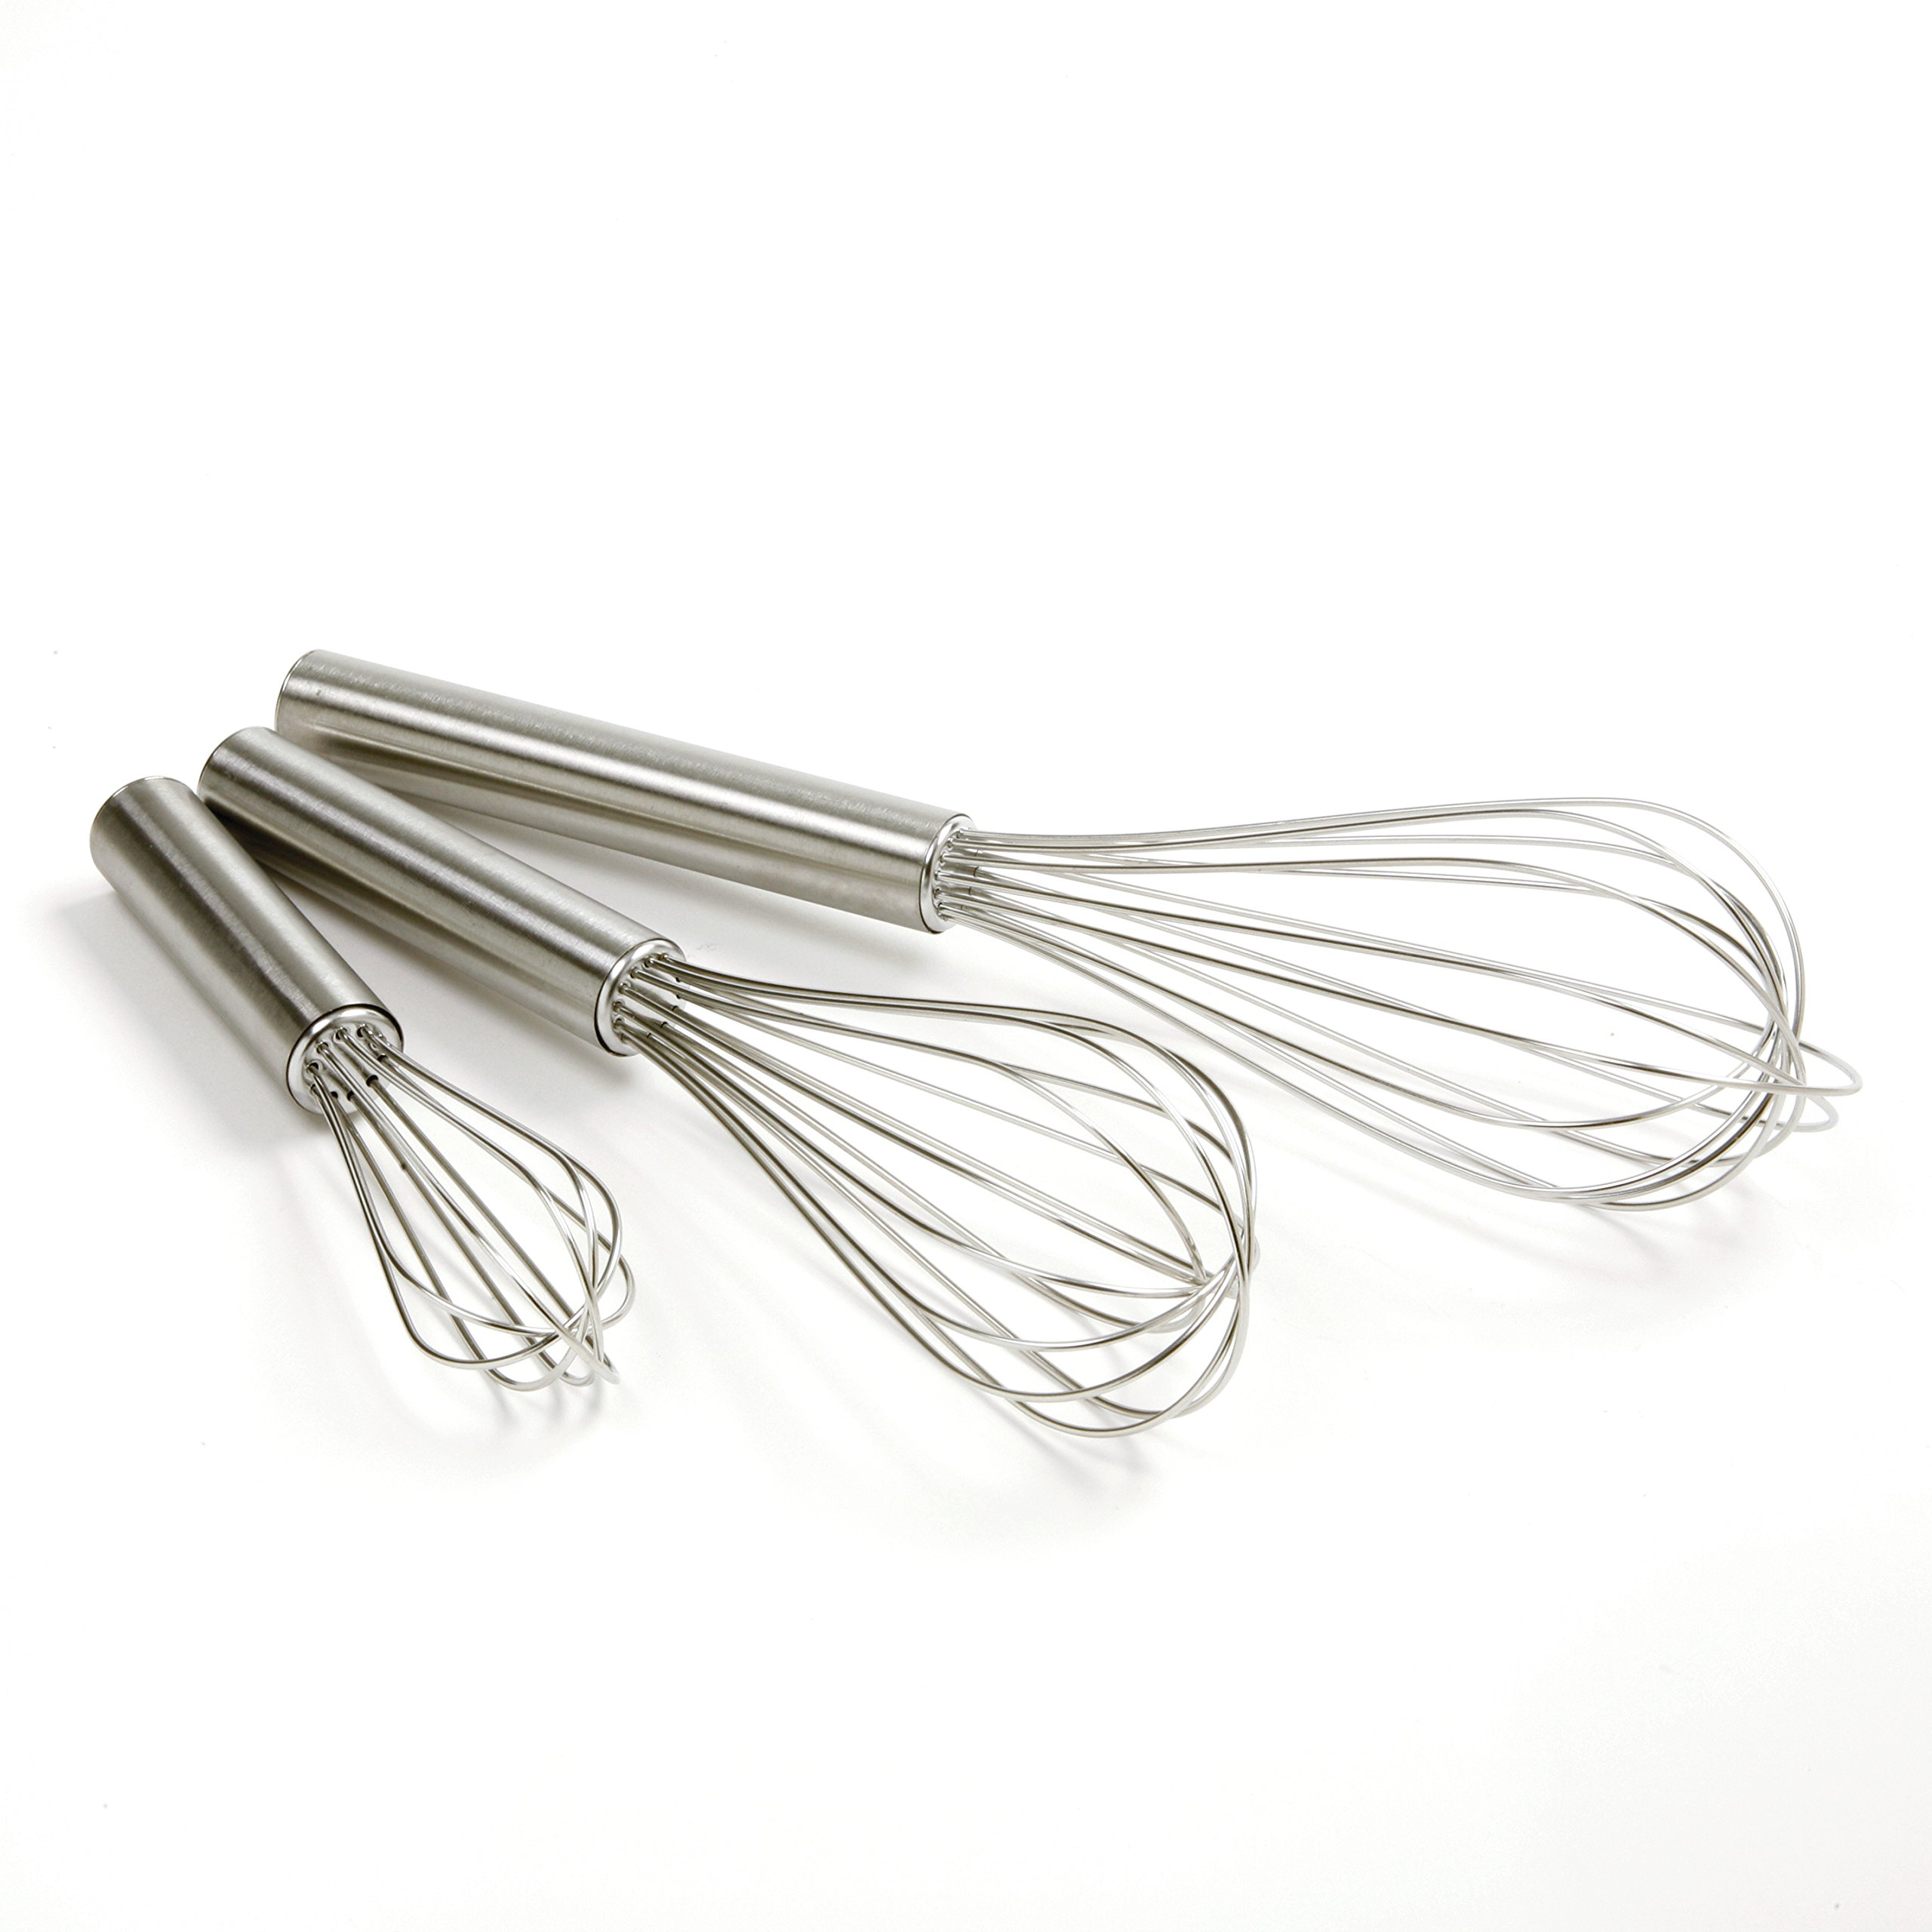 Norpro Balloon Wire Whisk Set of 3 Stainless Steel Stir/Mix/Beat 6'' /8''/ 10''